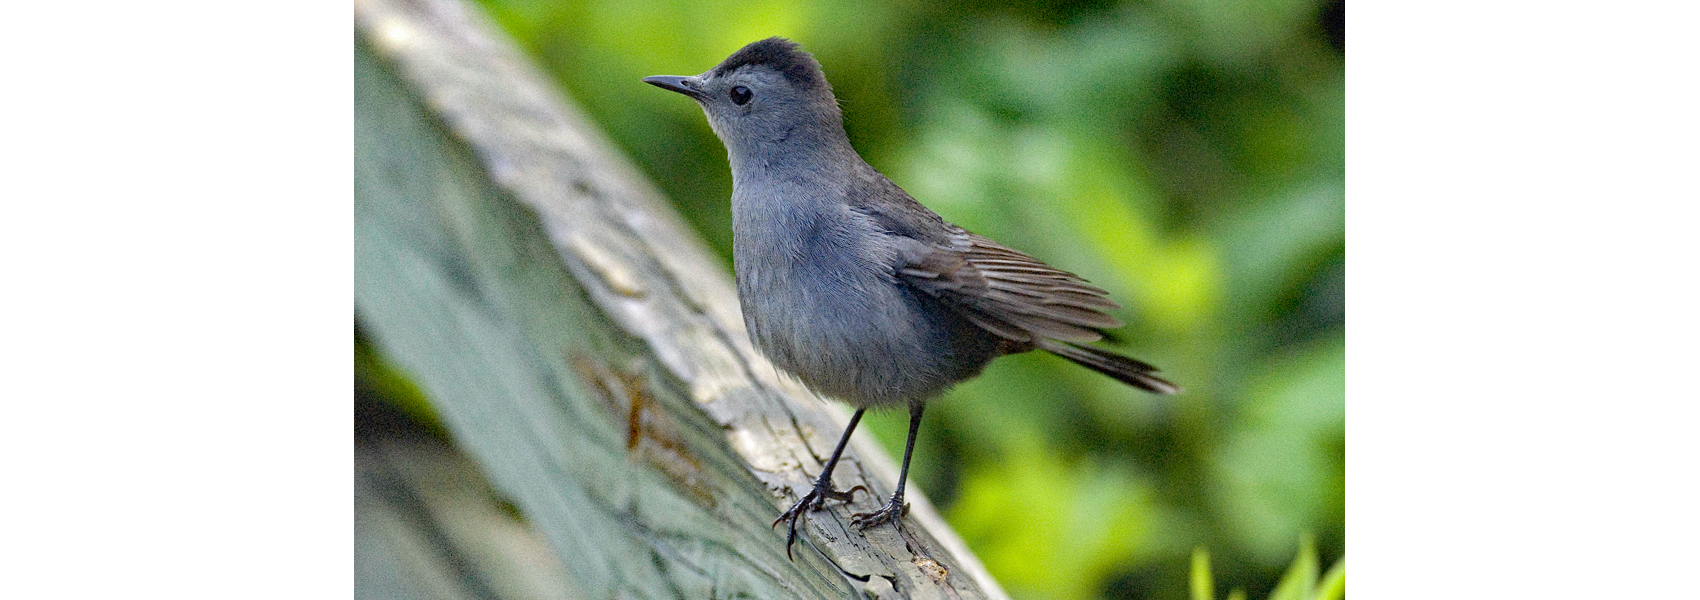 A gray catbird sits on a deck rail